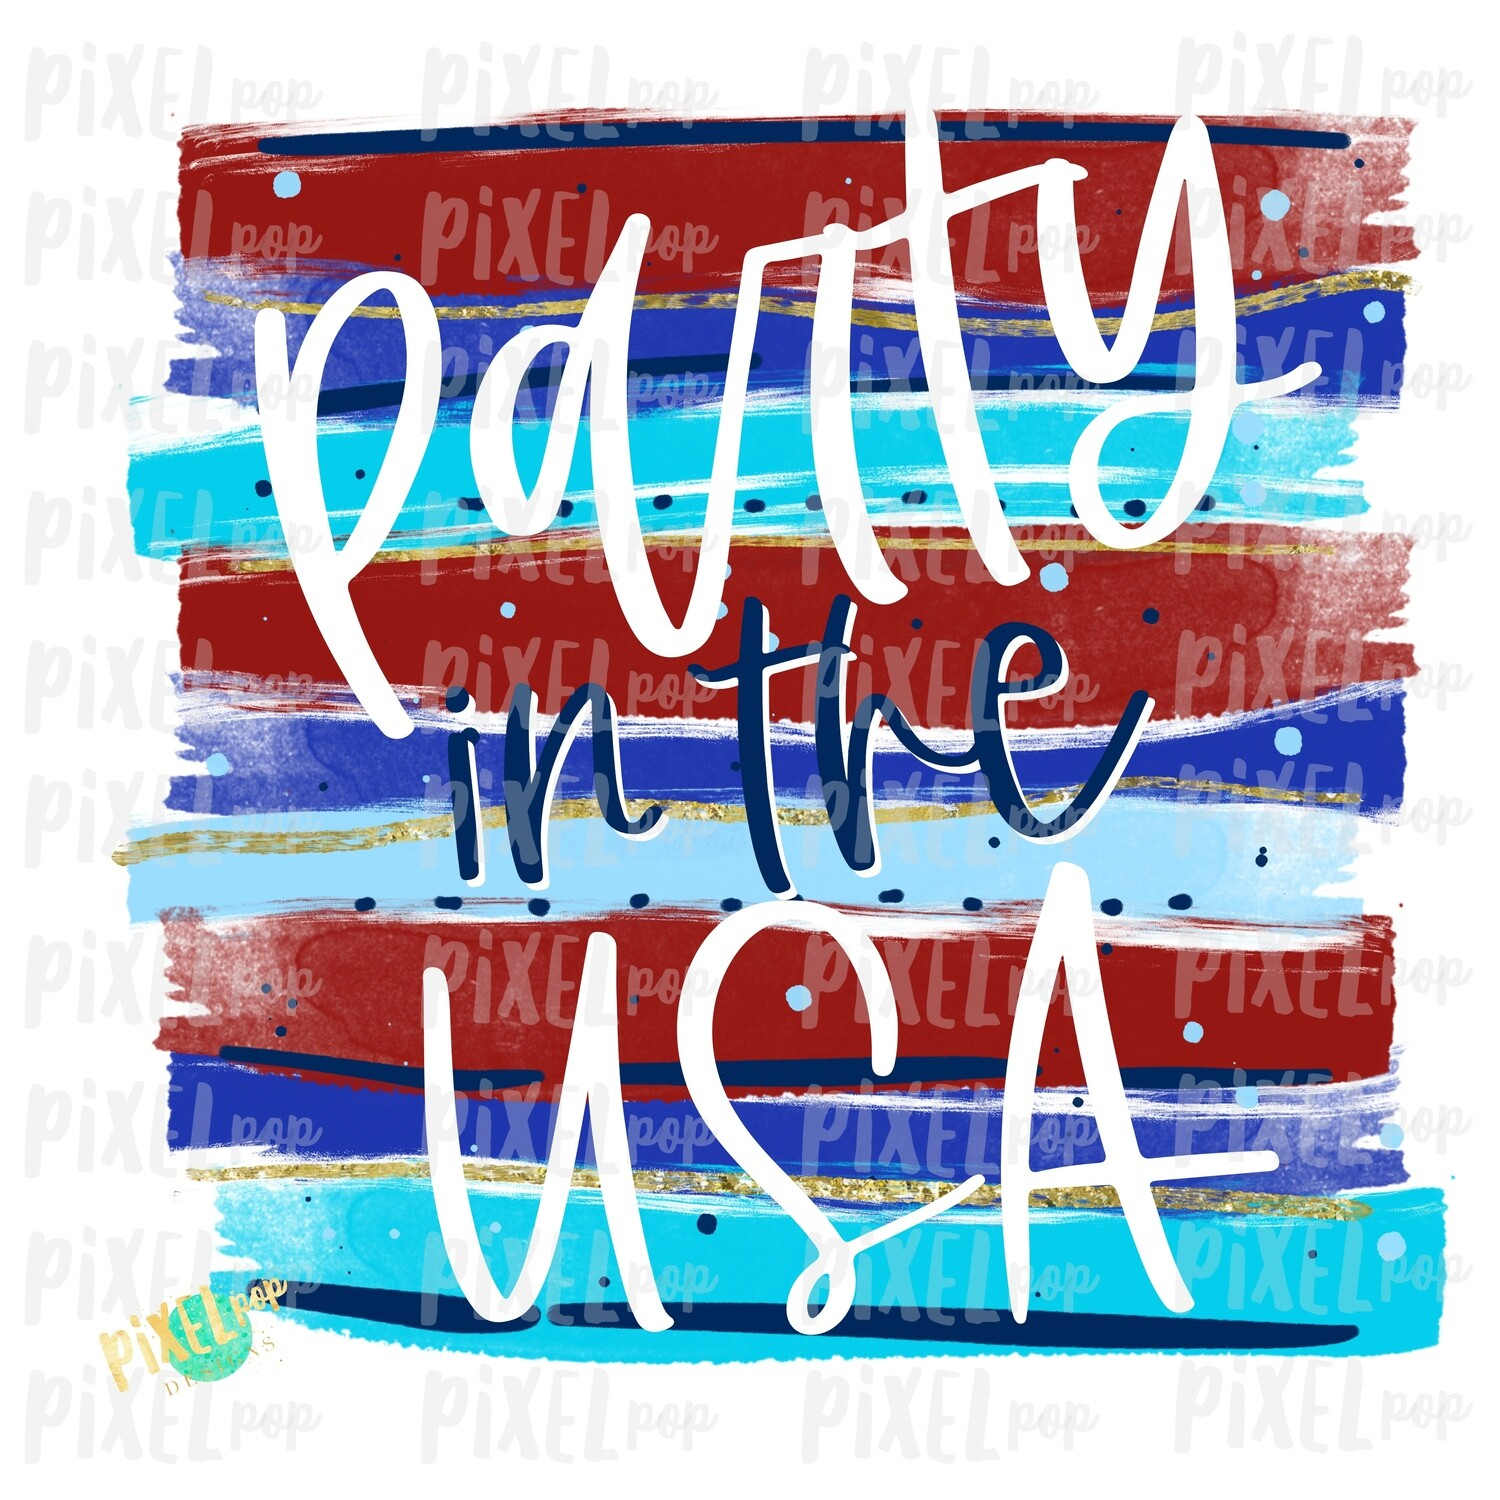 Party in the USA Brush Stroke Watercolor PNG | Sublimation Design | July 4 Design | Independence Day Digital Art | Printable  | Clip Art